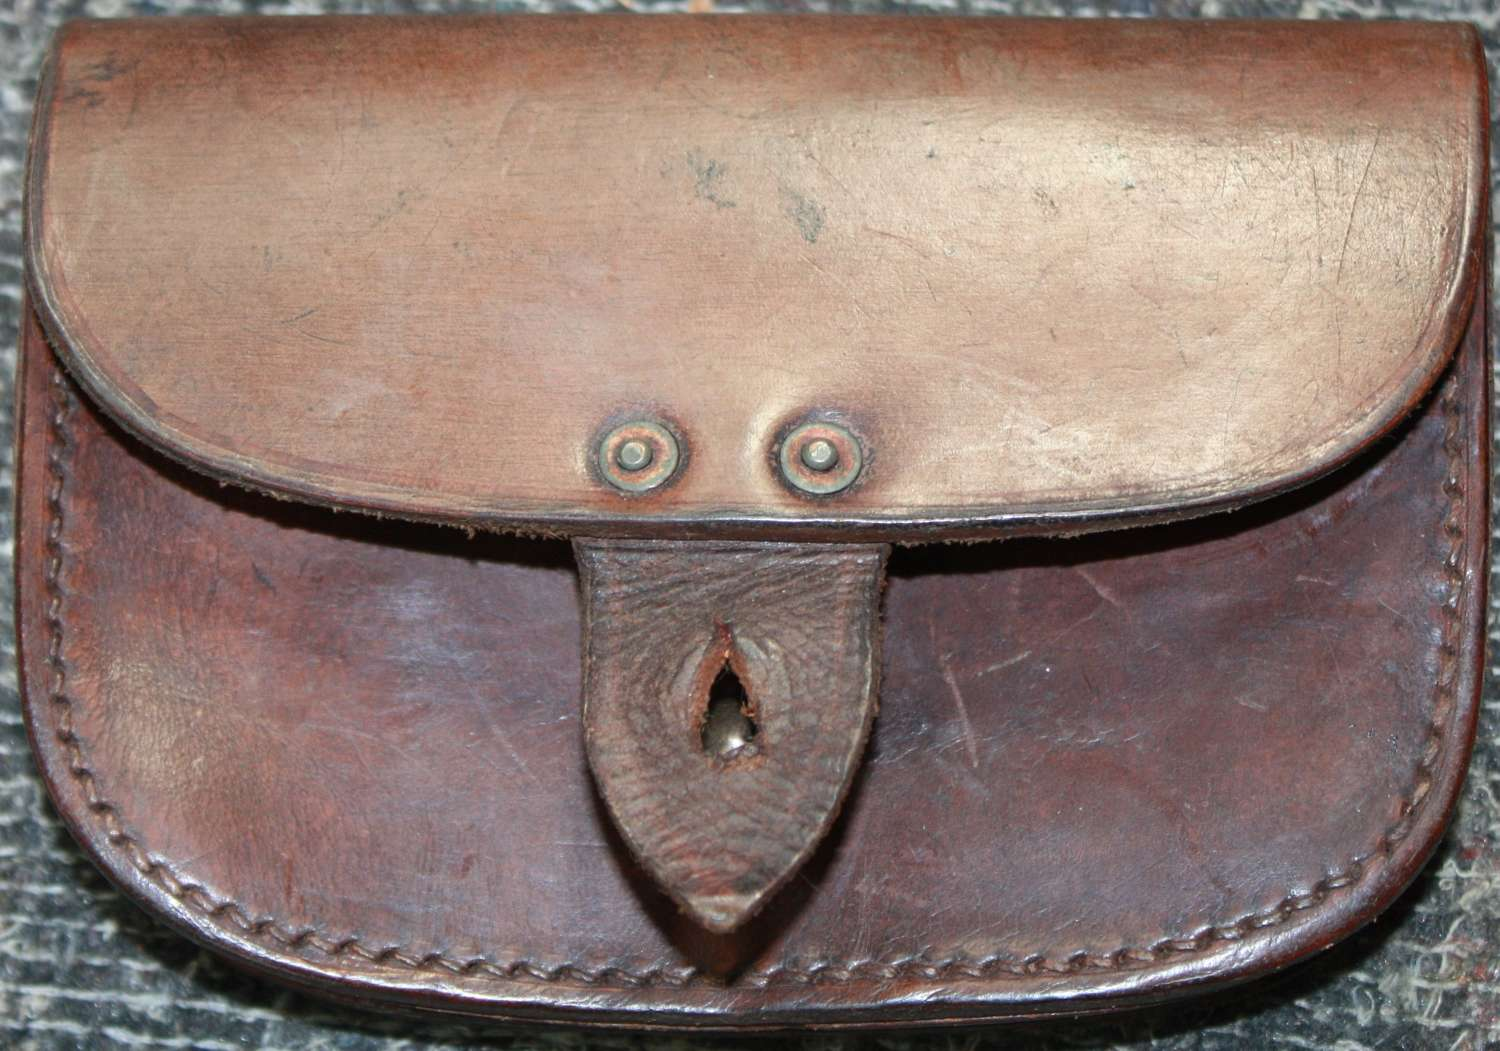 A WWII 1941 DATED NAVY PATTERN LEATHER PISTOL AMMO POUCH